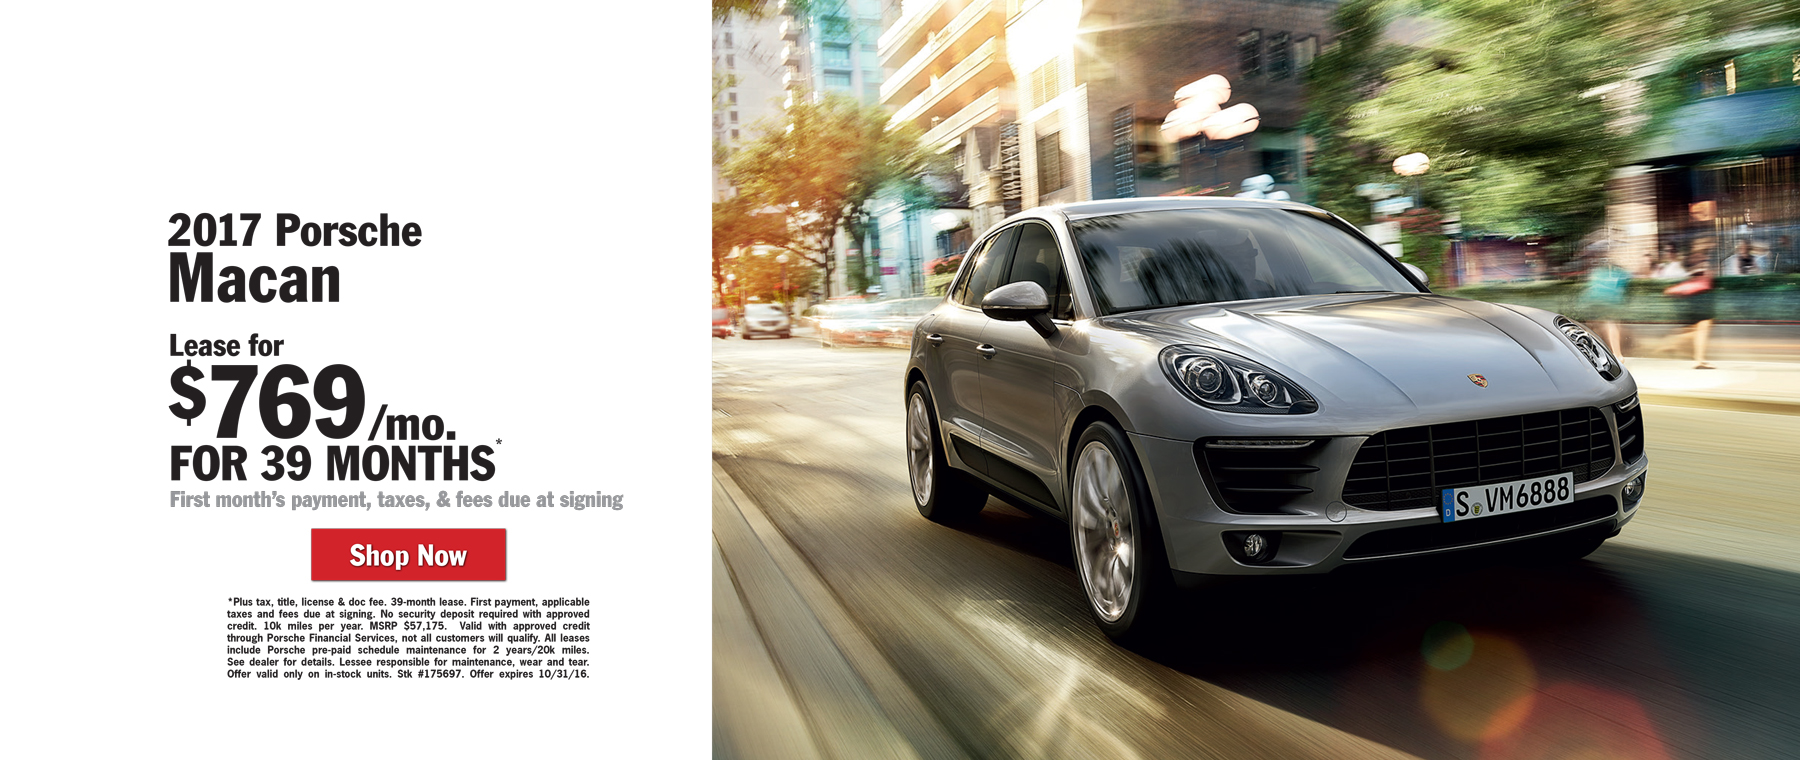 Porsche Macan Lease for $769 / mo